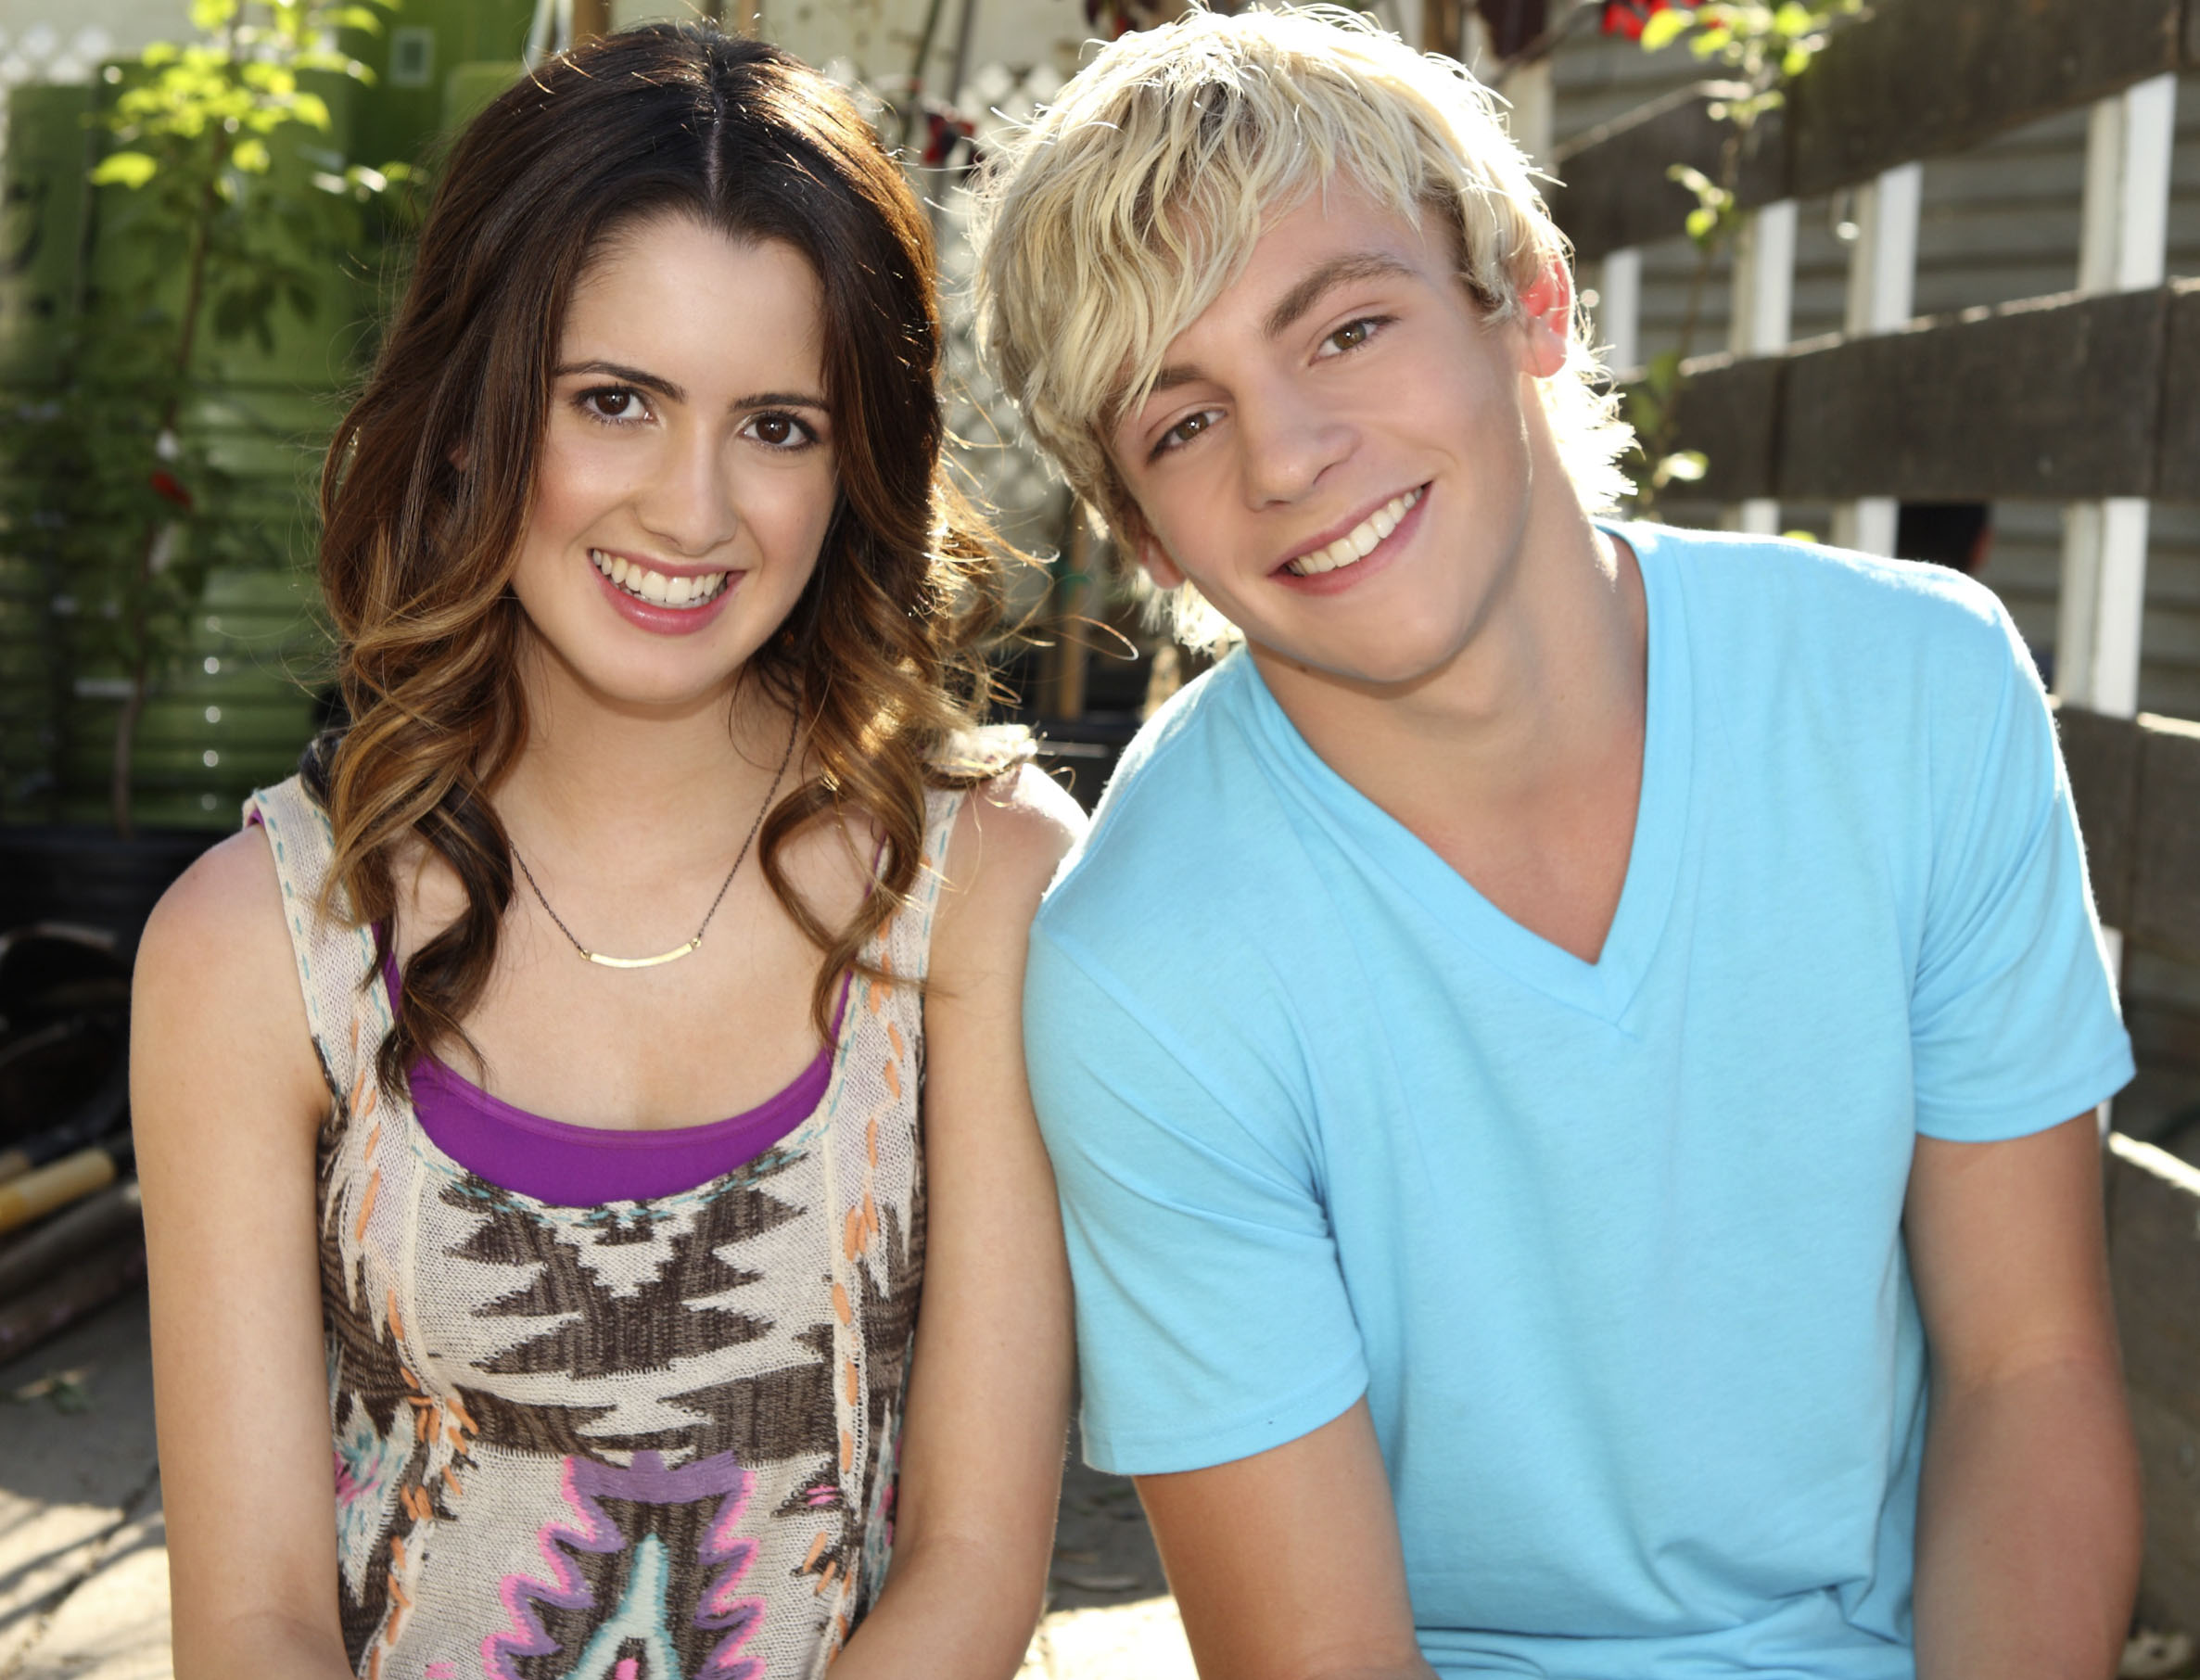 Austin and ally dating against your type